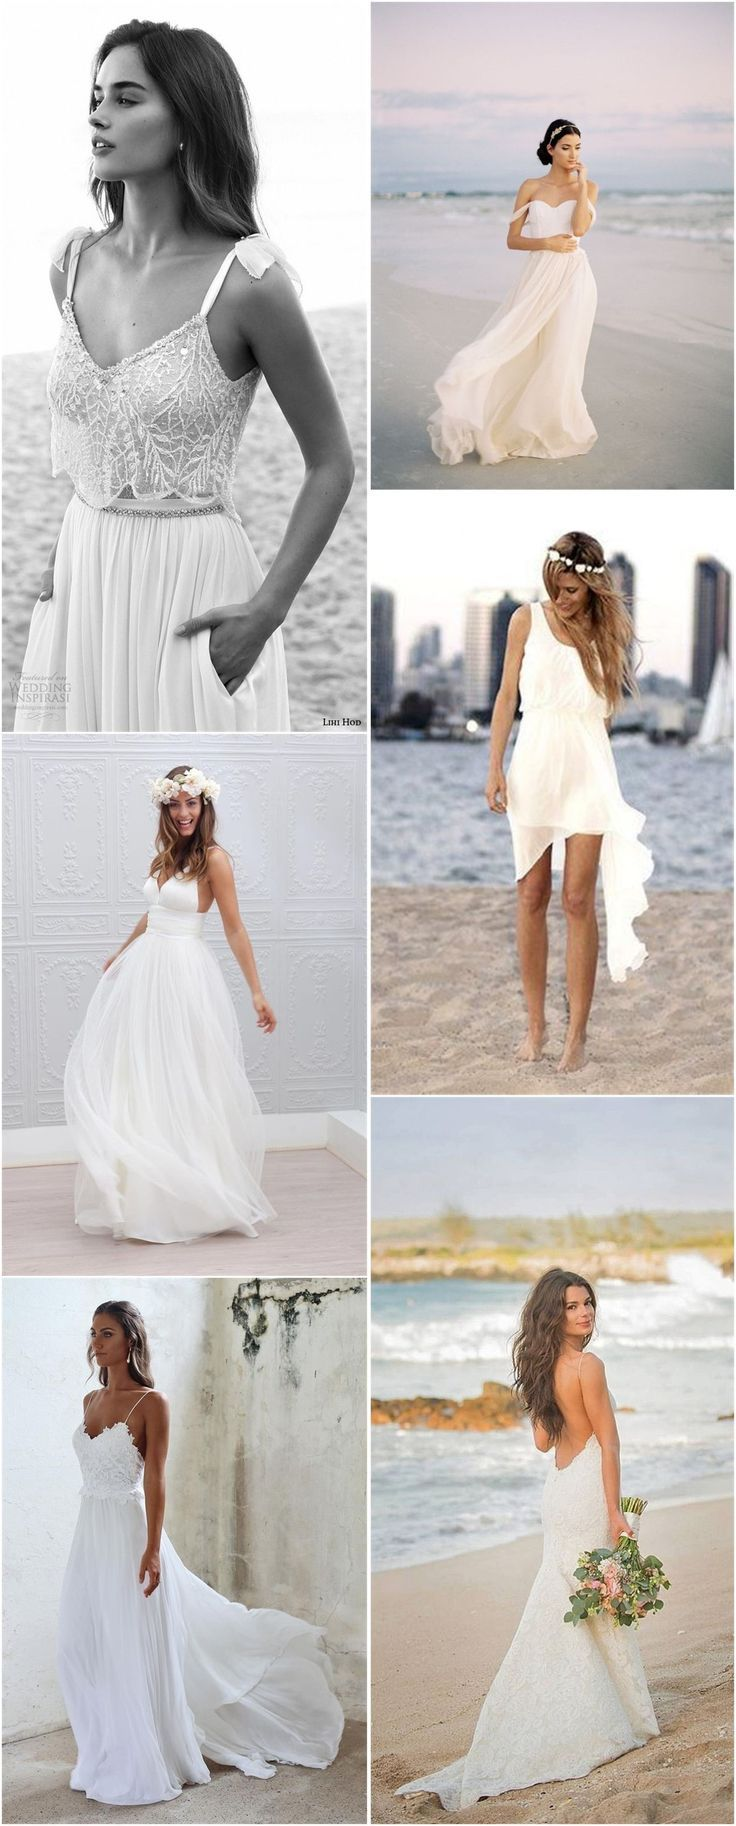 Top 22 beach wedding dresses ideas to stand you out beach beach wedding dresses ombrellifo Images